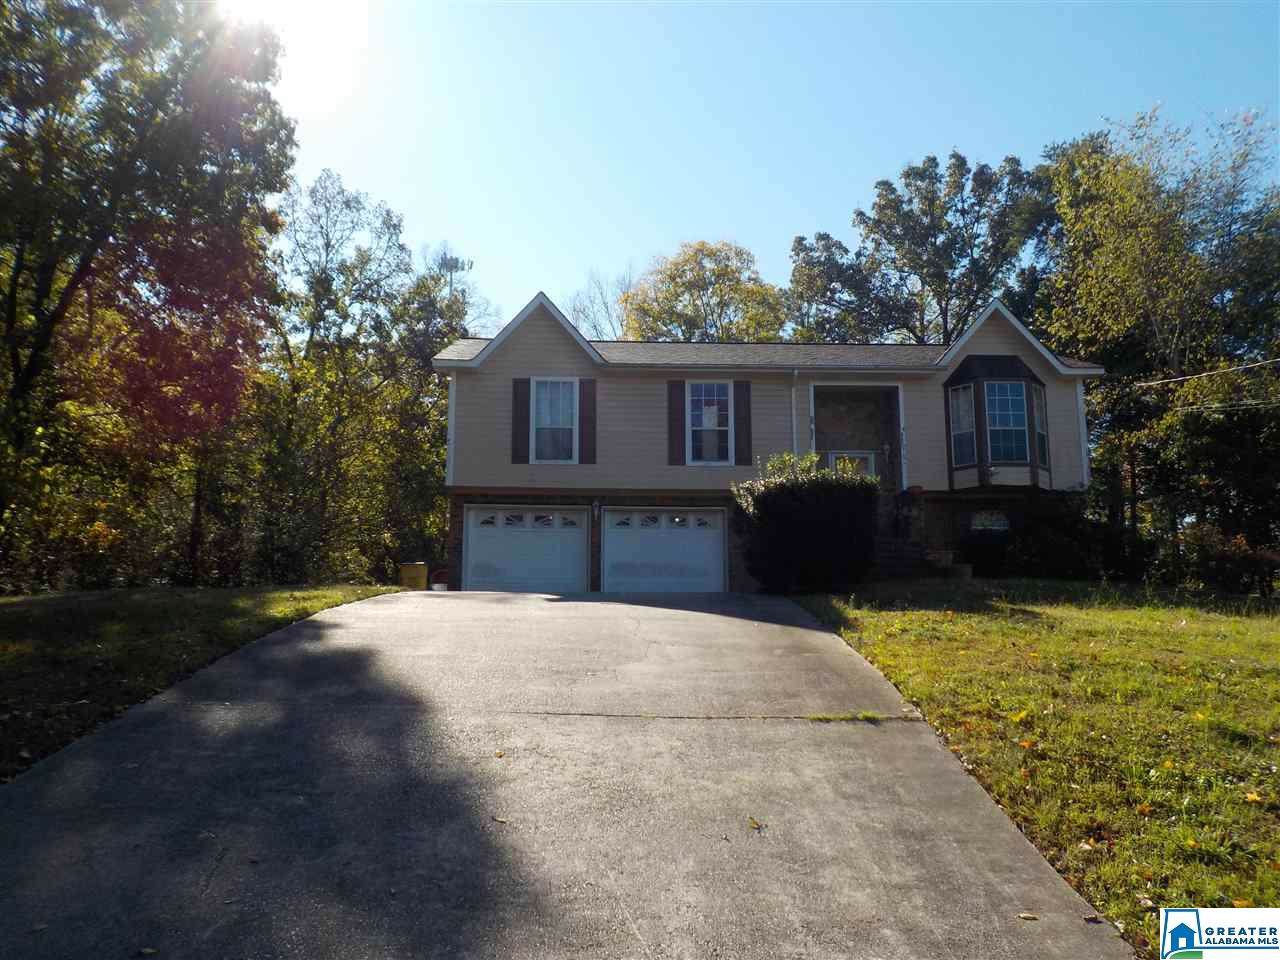 307 Grants Mill Dr - Photo 1